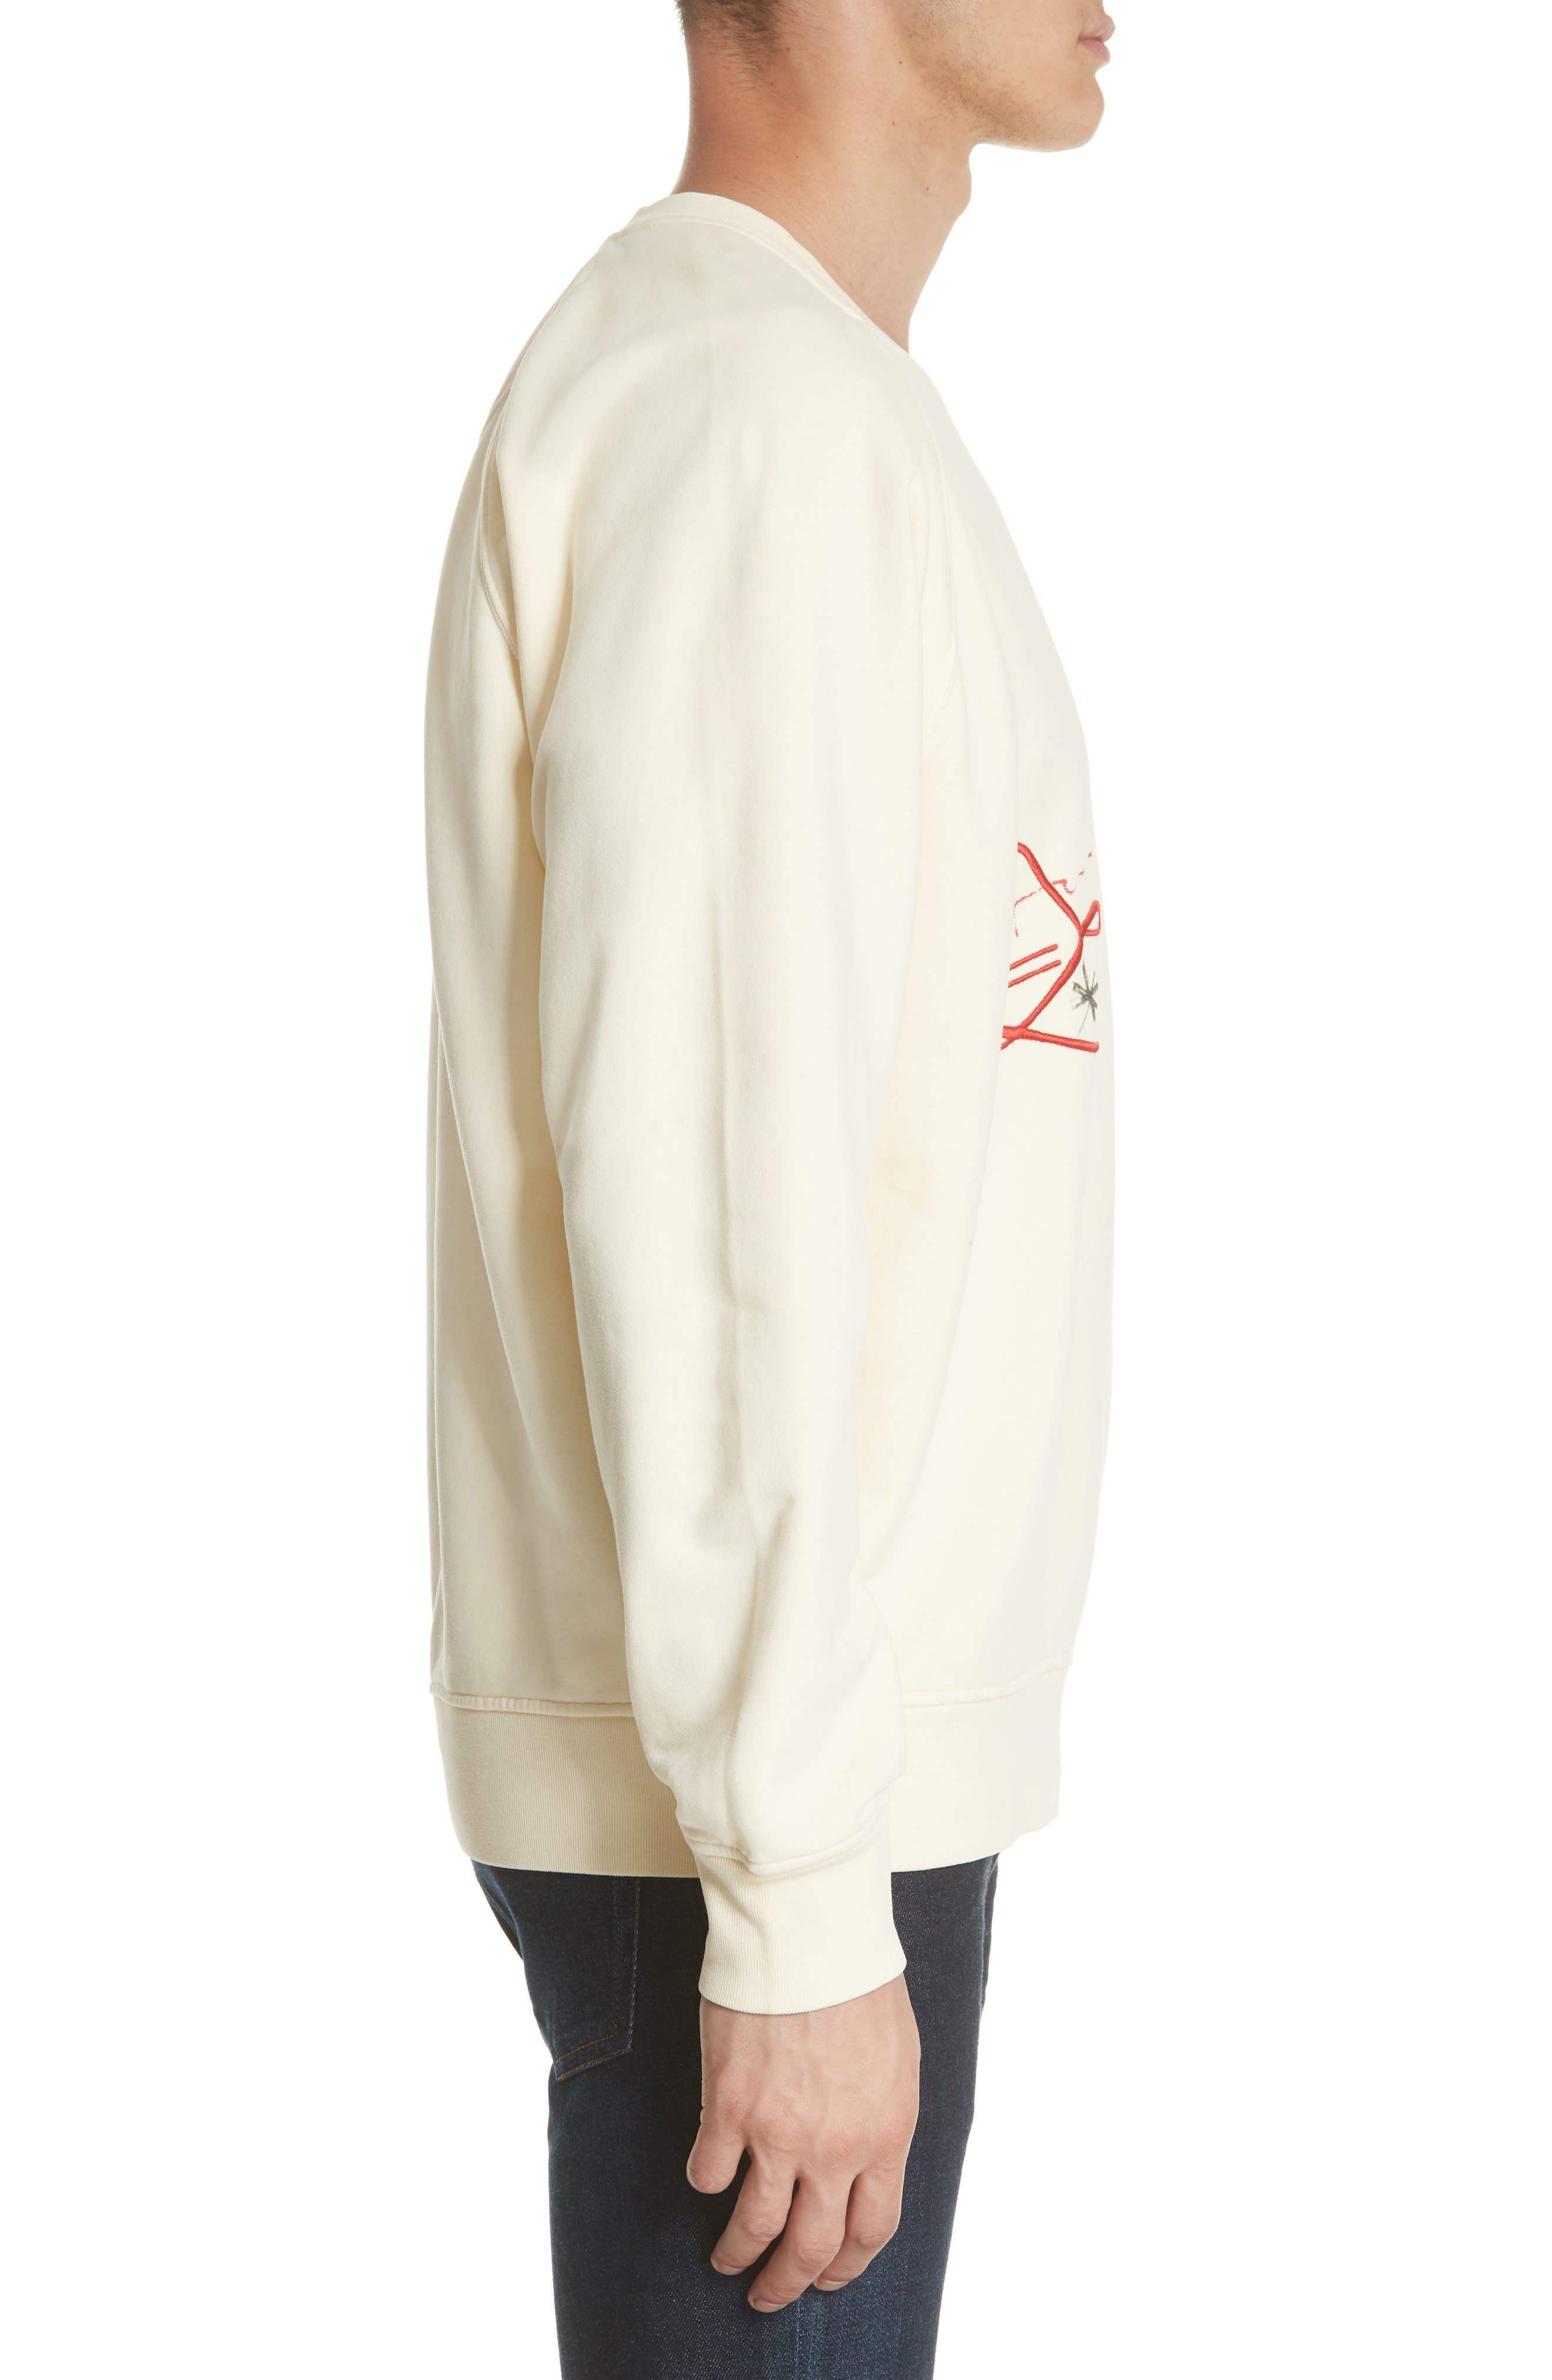 Earlford Graphic Sweatshirt,                             Alternate thumbnail 3, color,                             Pale Yellow